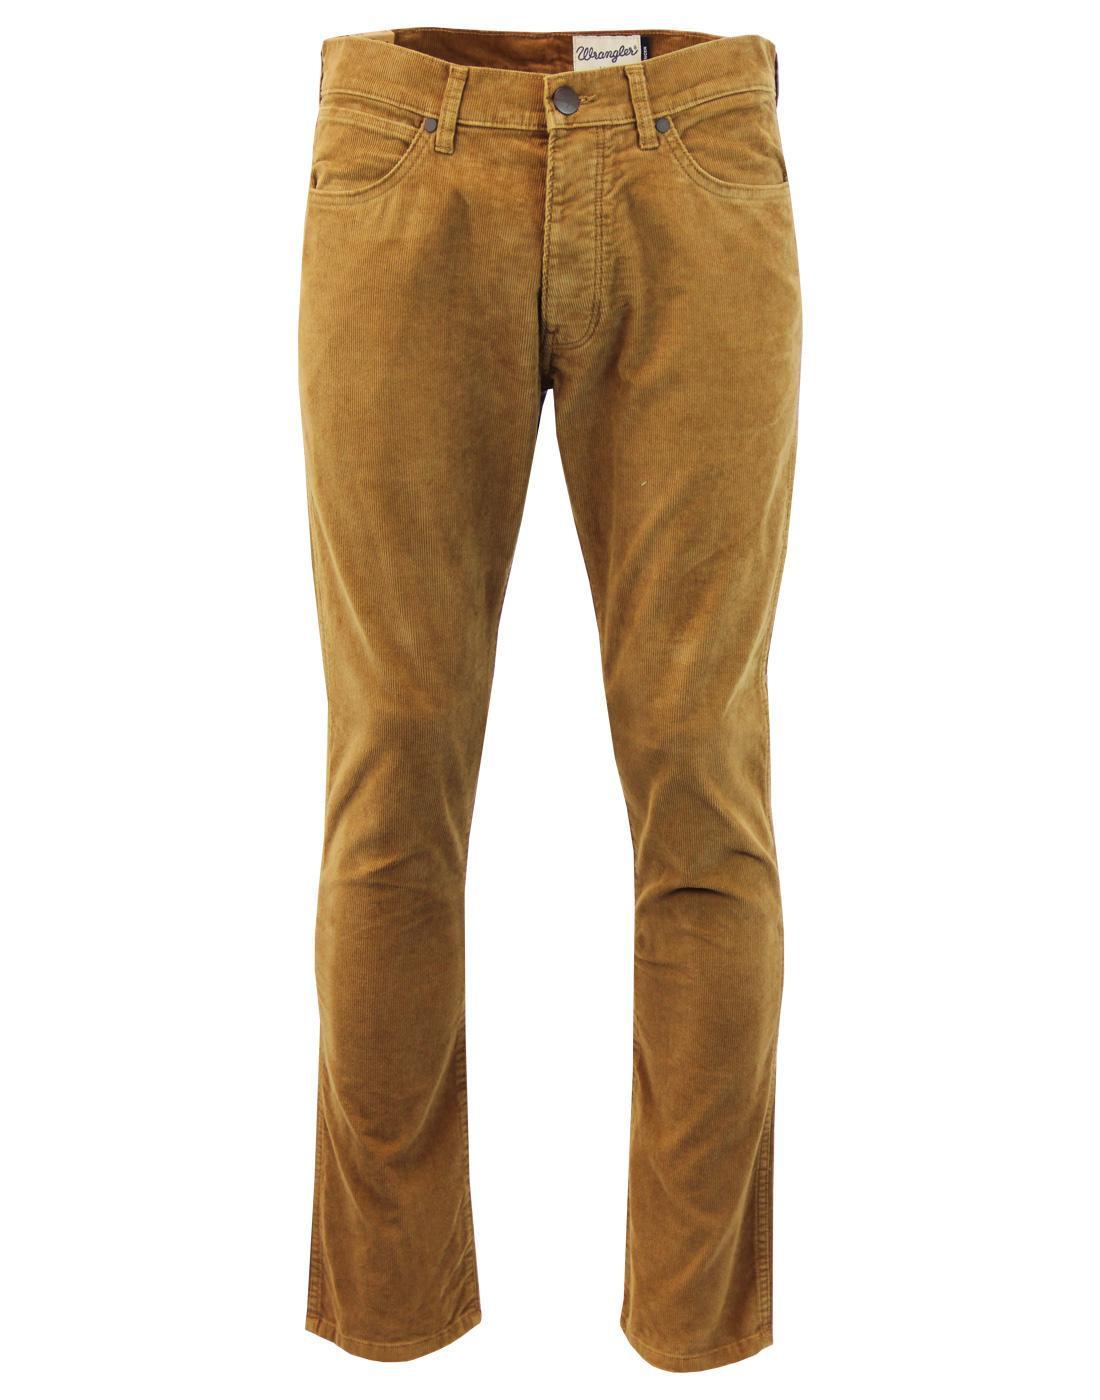 Spencer WRANGLER Bison Washed Retro Mod Slim Cords